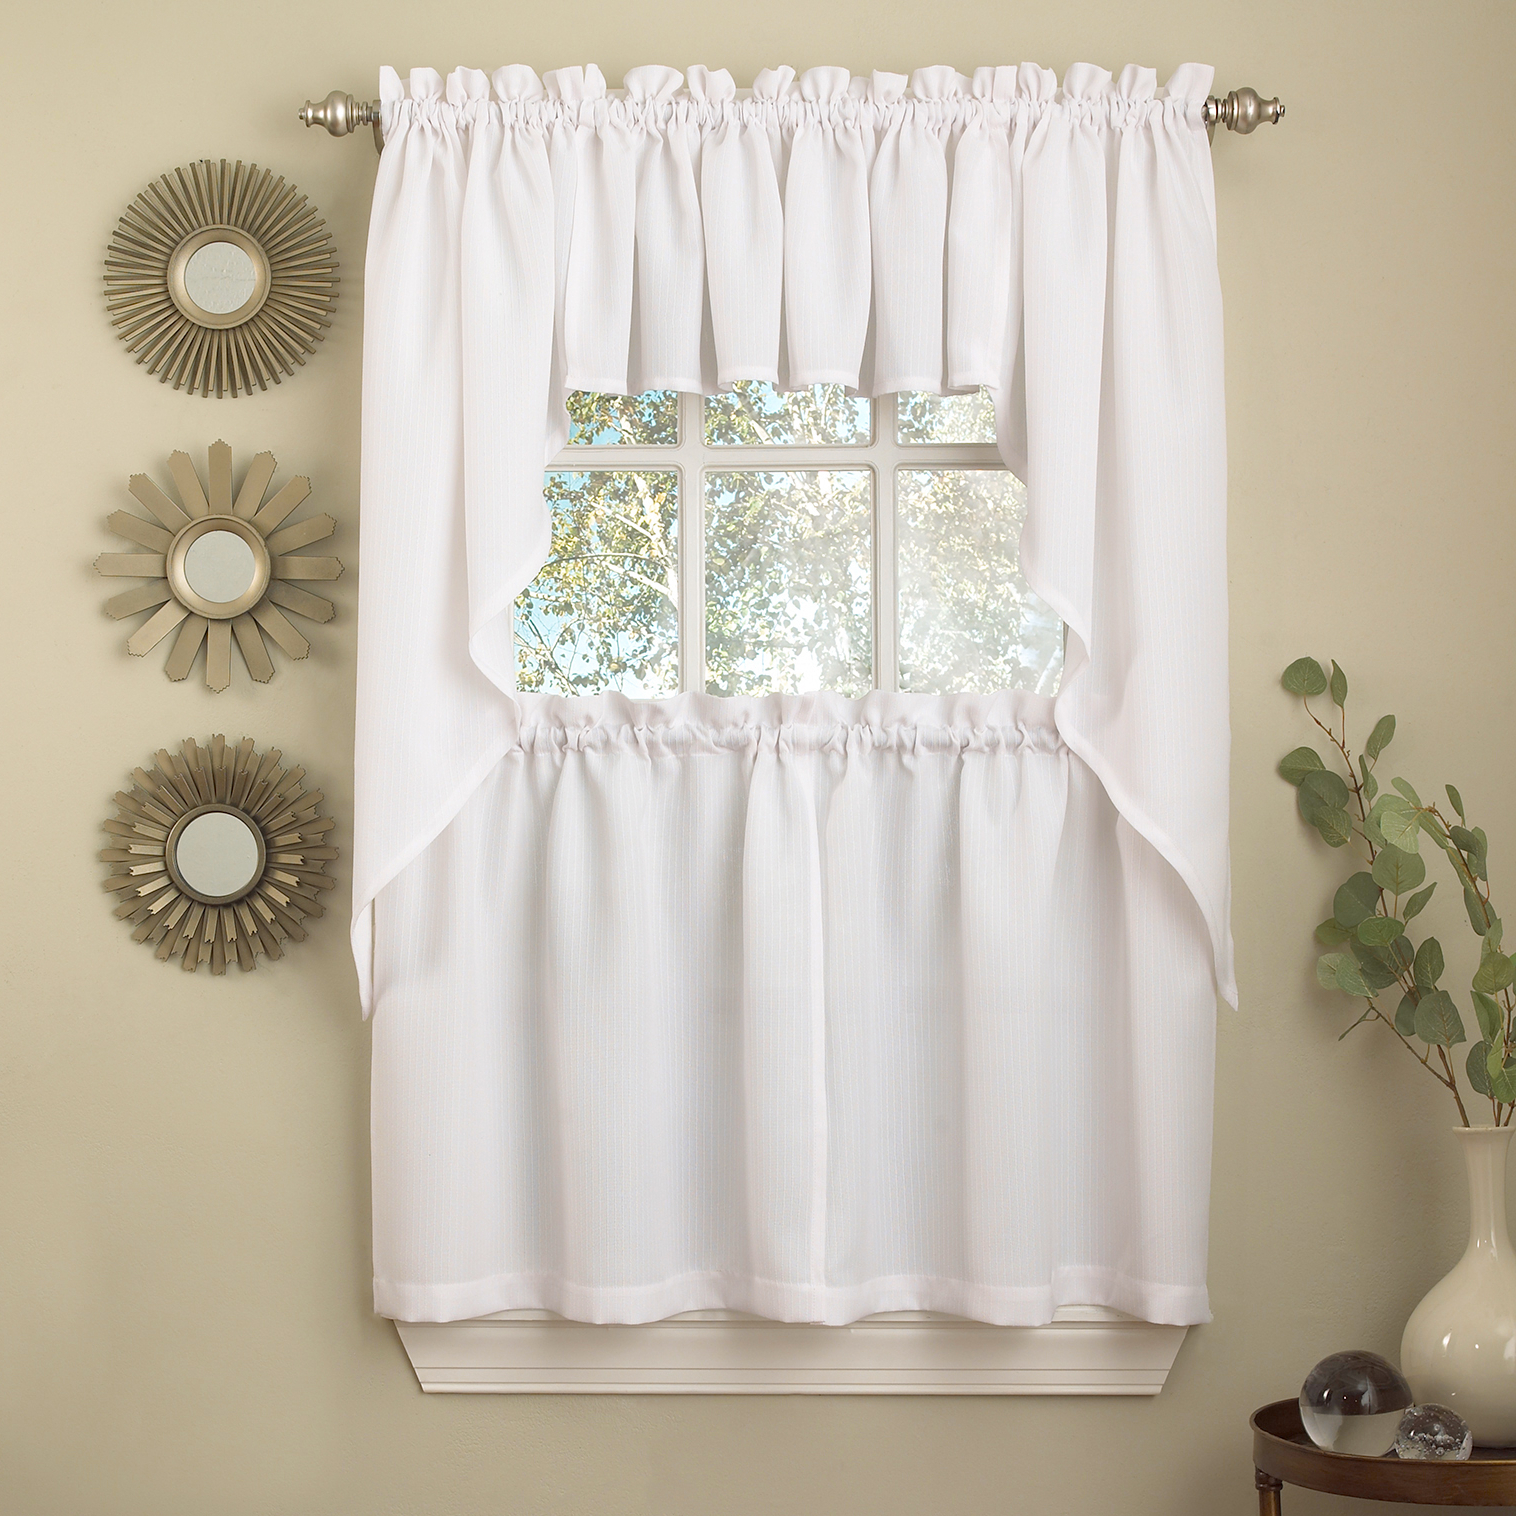 Details About White Solid Opaque Ribcord Kitchen Curtains – Choice Of Tiers  Valance Or Swag Throughout Preferred Semi Sheer Rod Pocket Kitchen Curtain Valance And Tiers Sets (View 3 of 20)